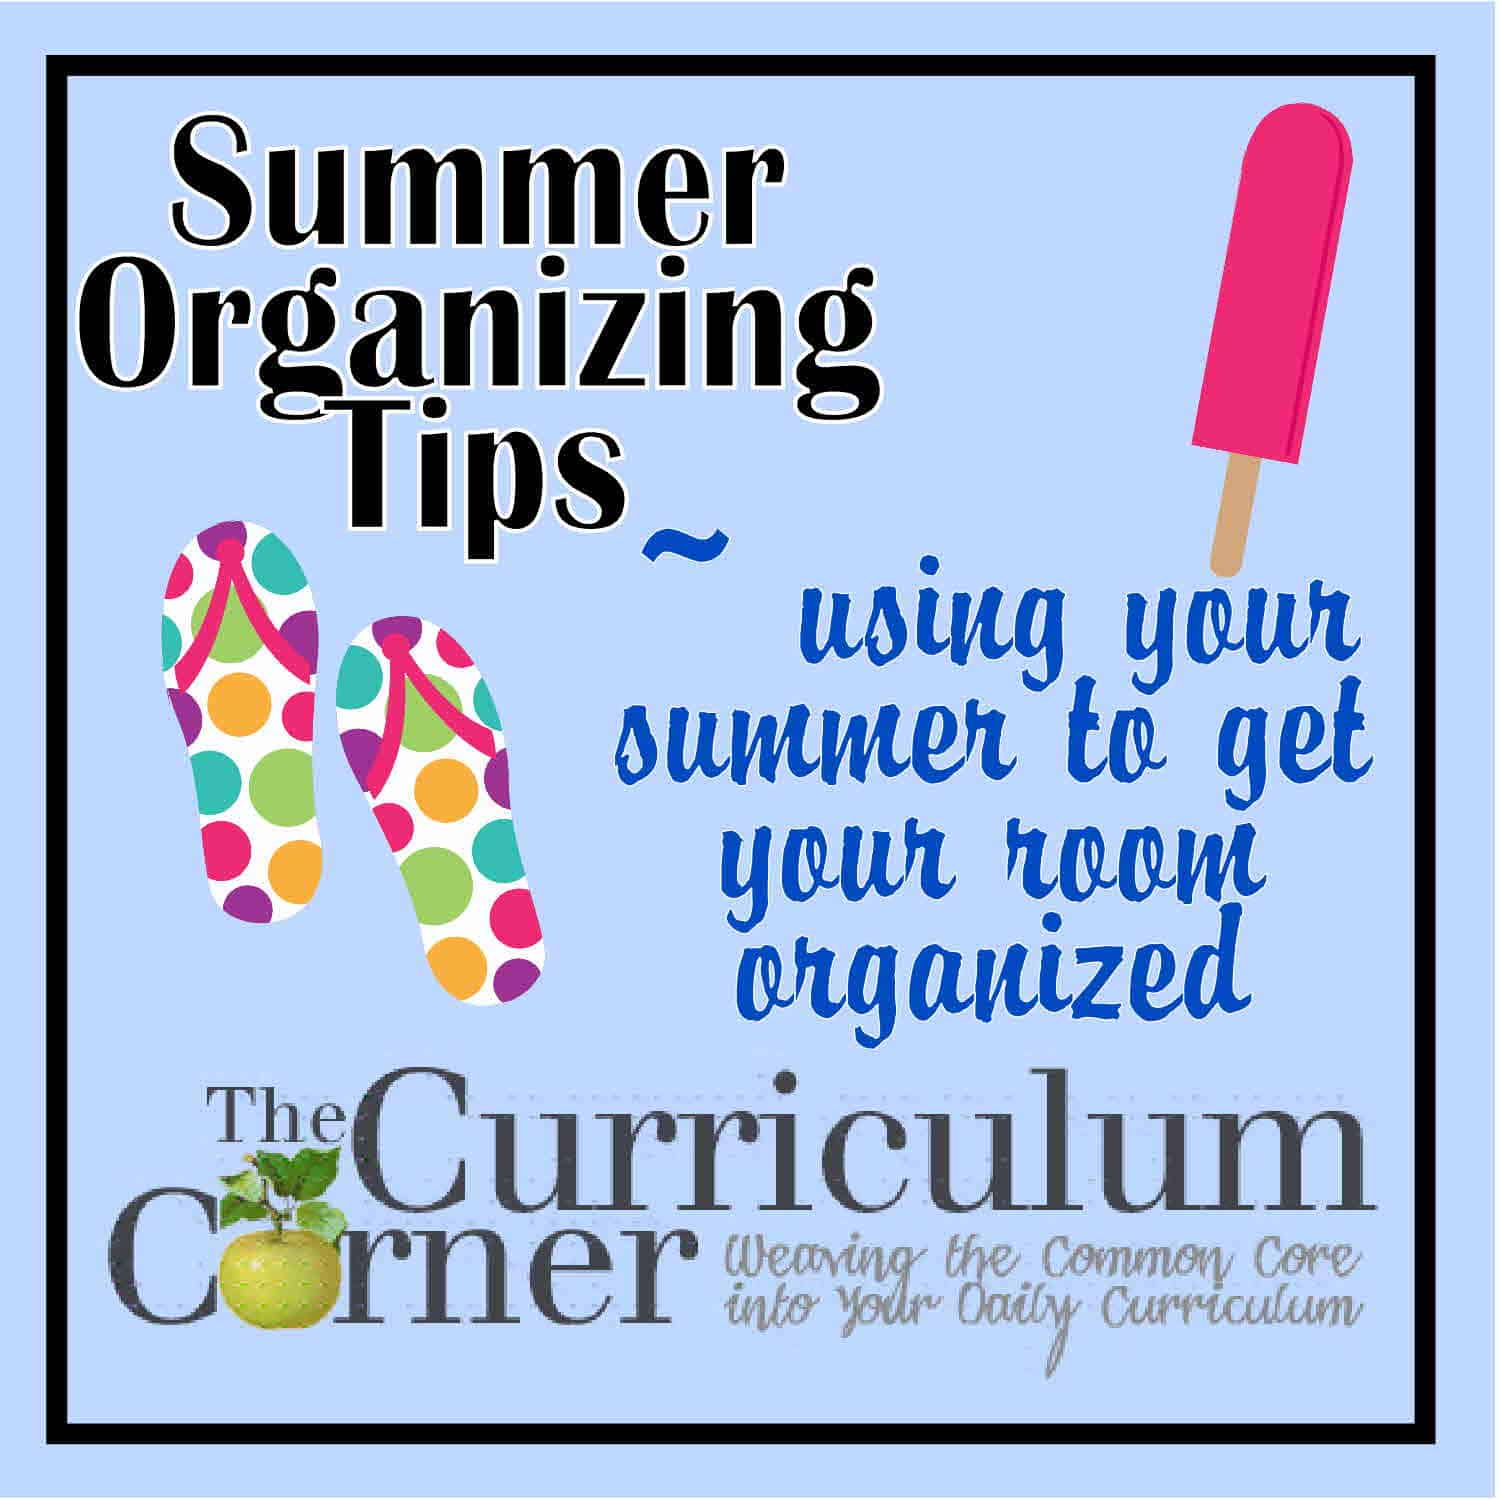 Summer's a Great Time to Get Organized!